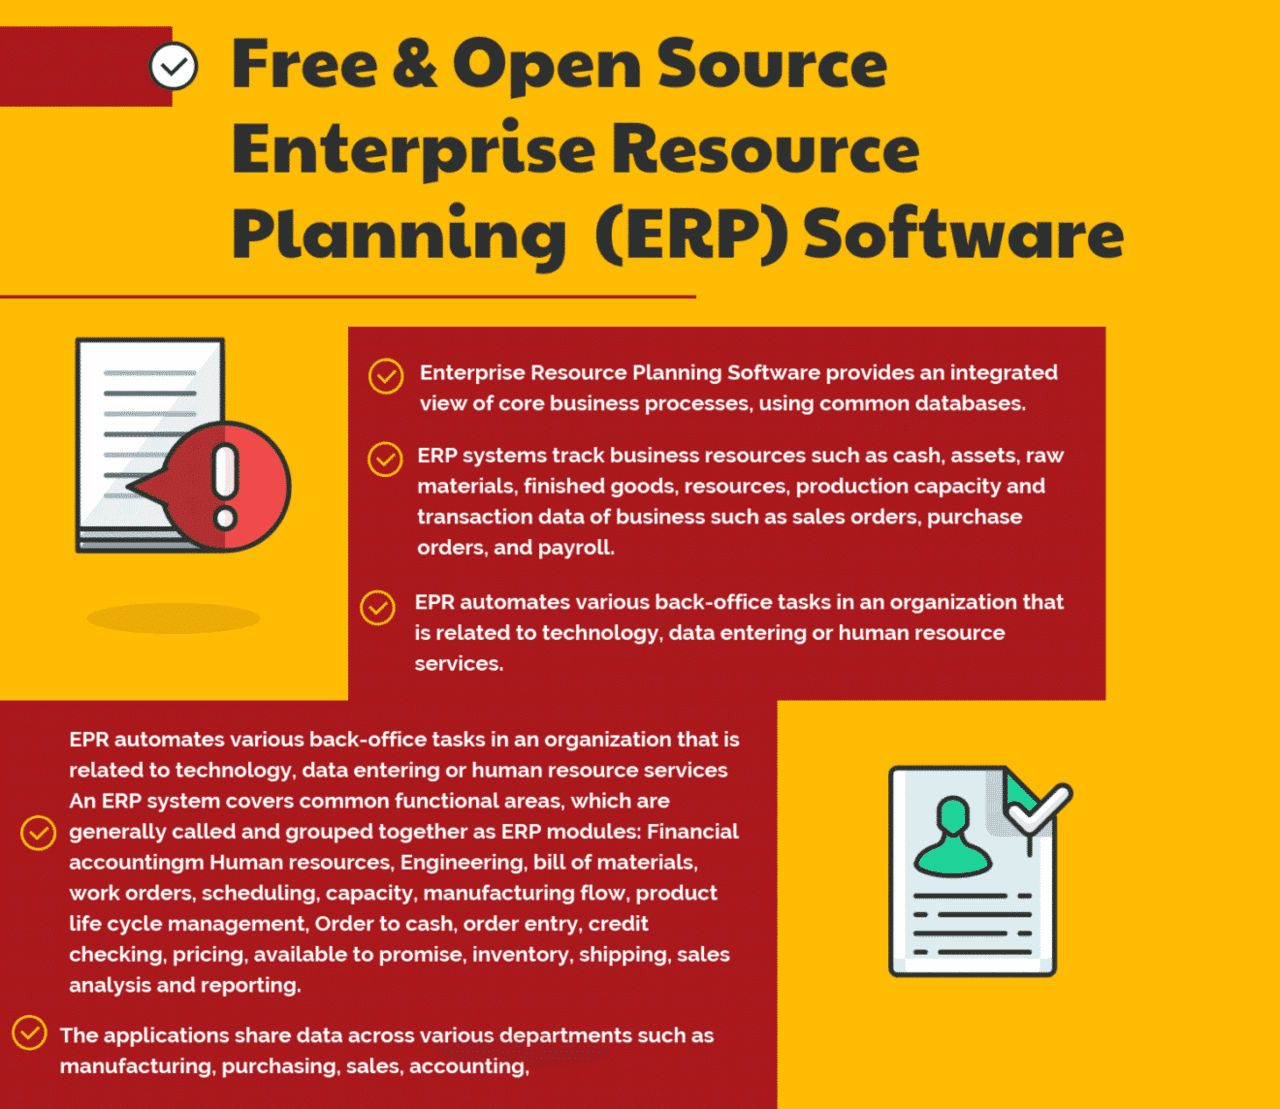 34 Free Open Source And Top Enterprise Resource Planning Erp Software Document Management System Software Enterprise